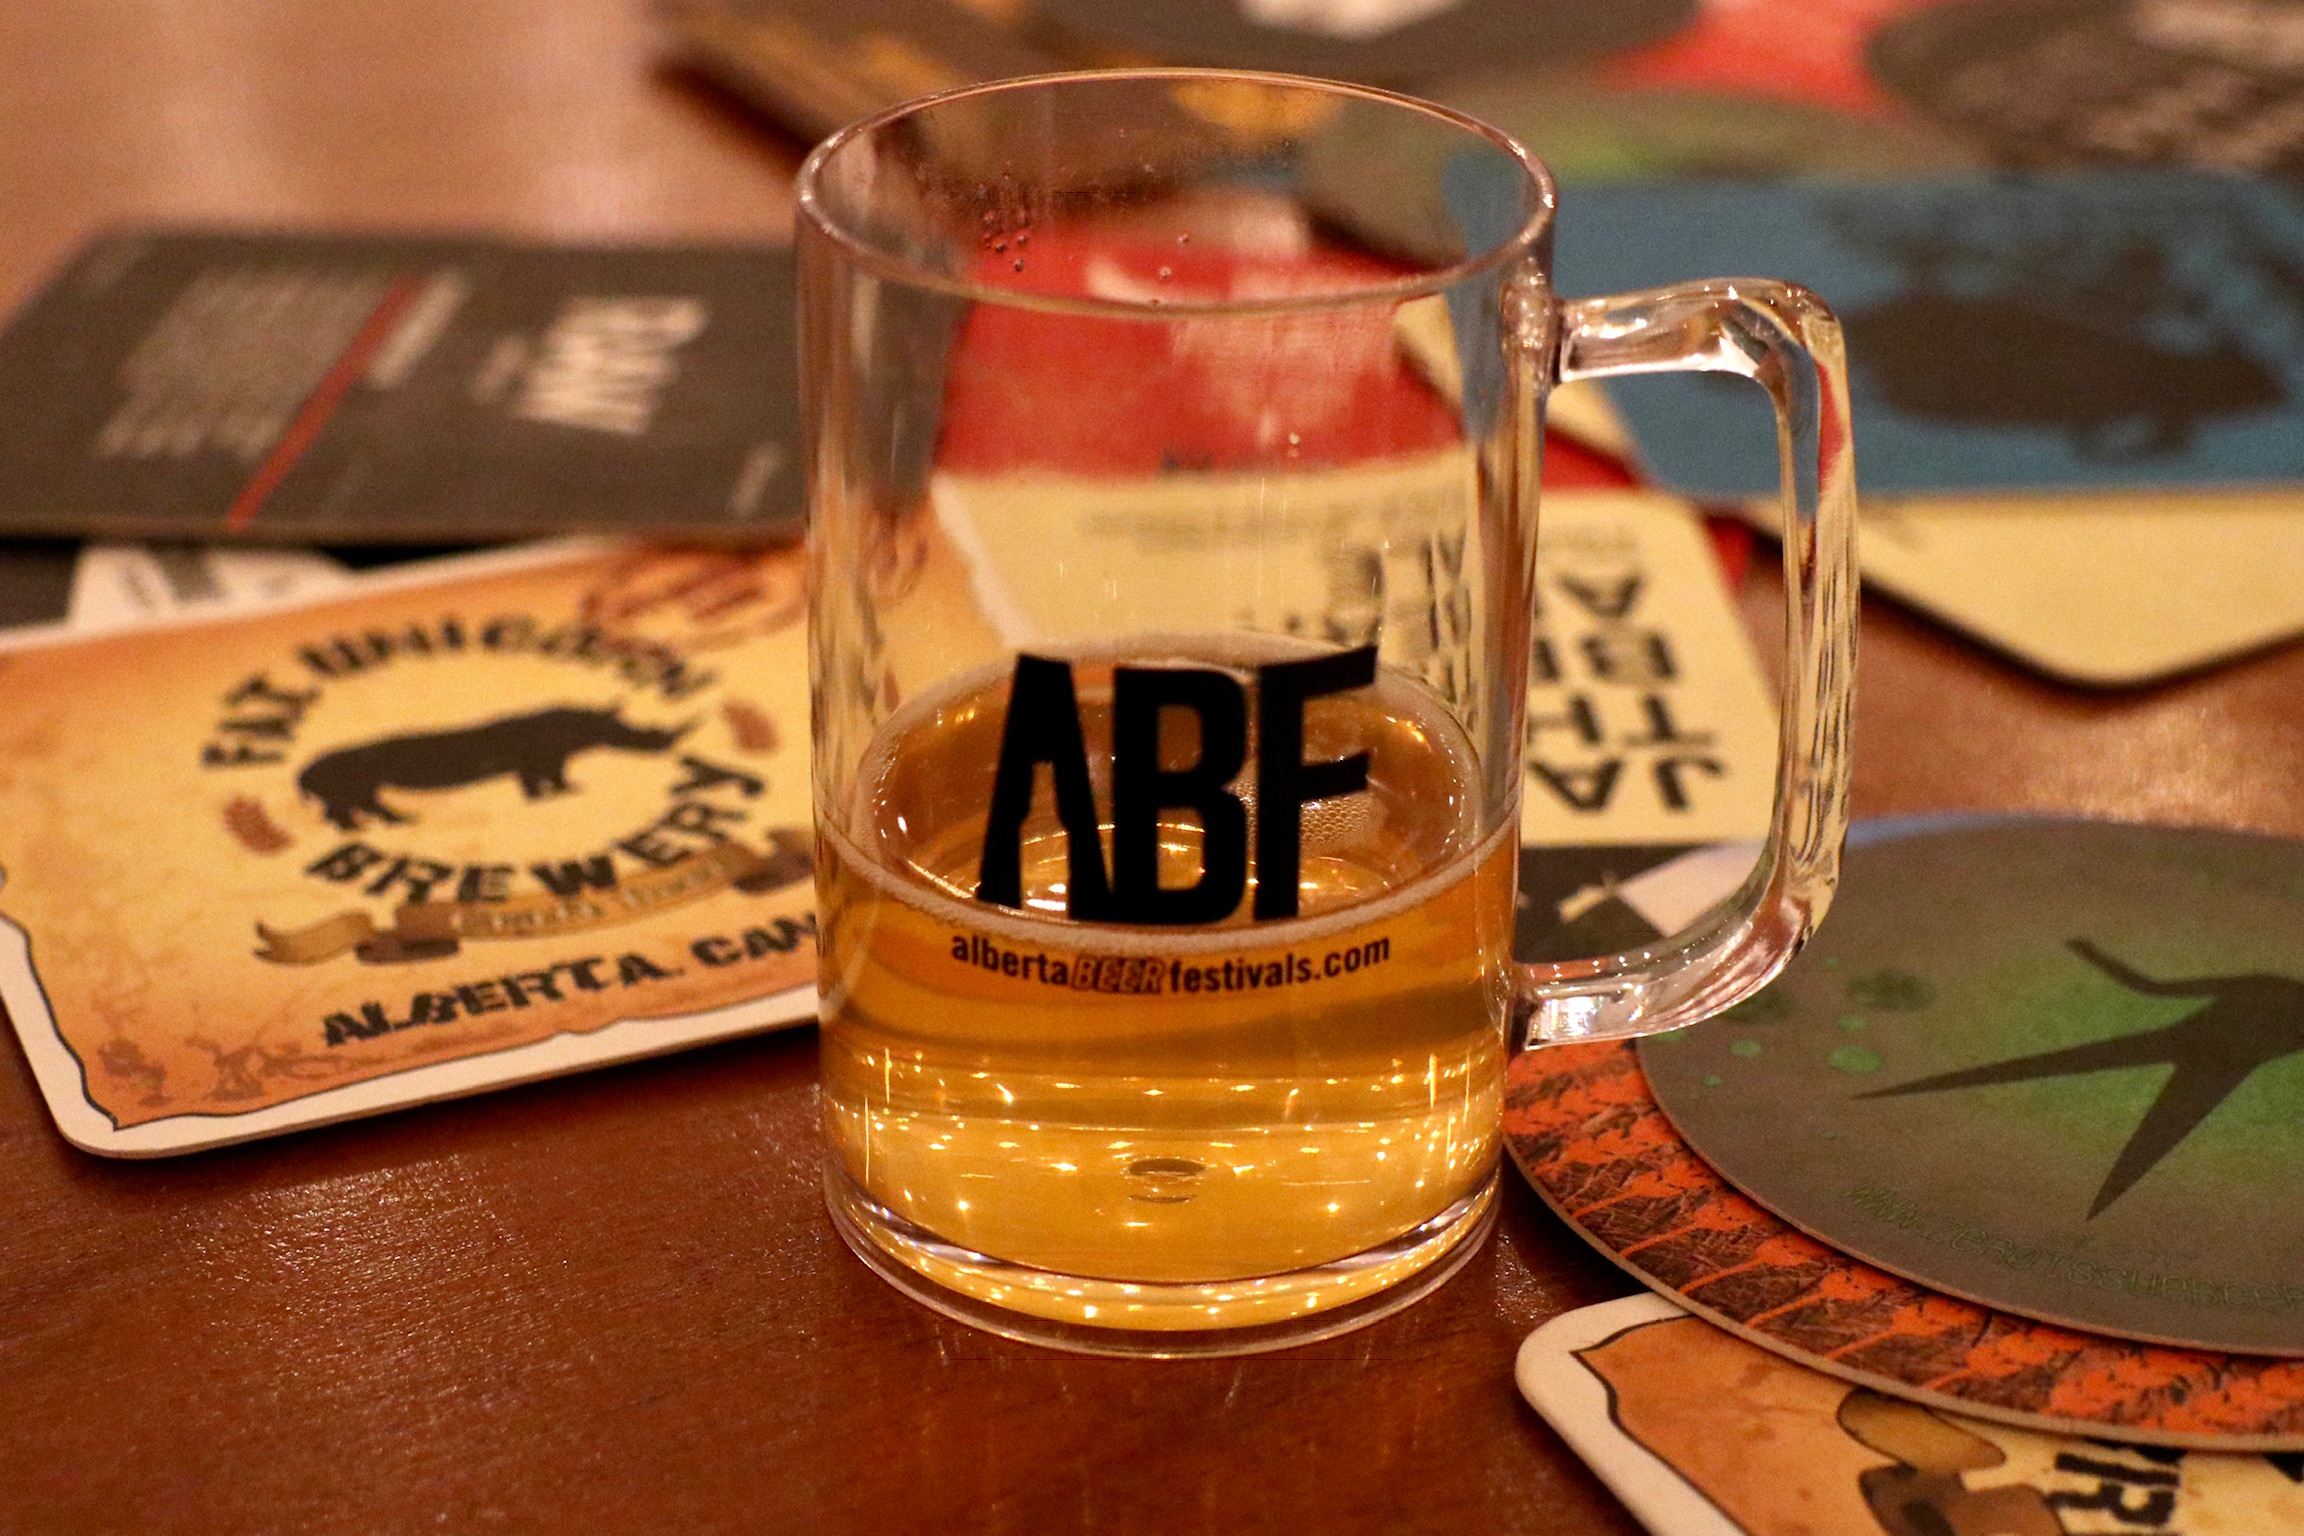 ABF Taster Mug at the Banff Craft Beer Festival.